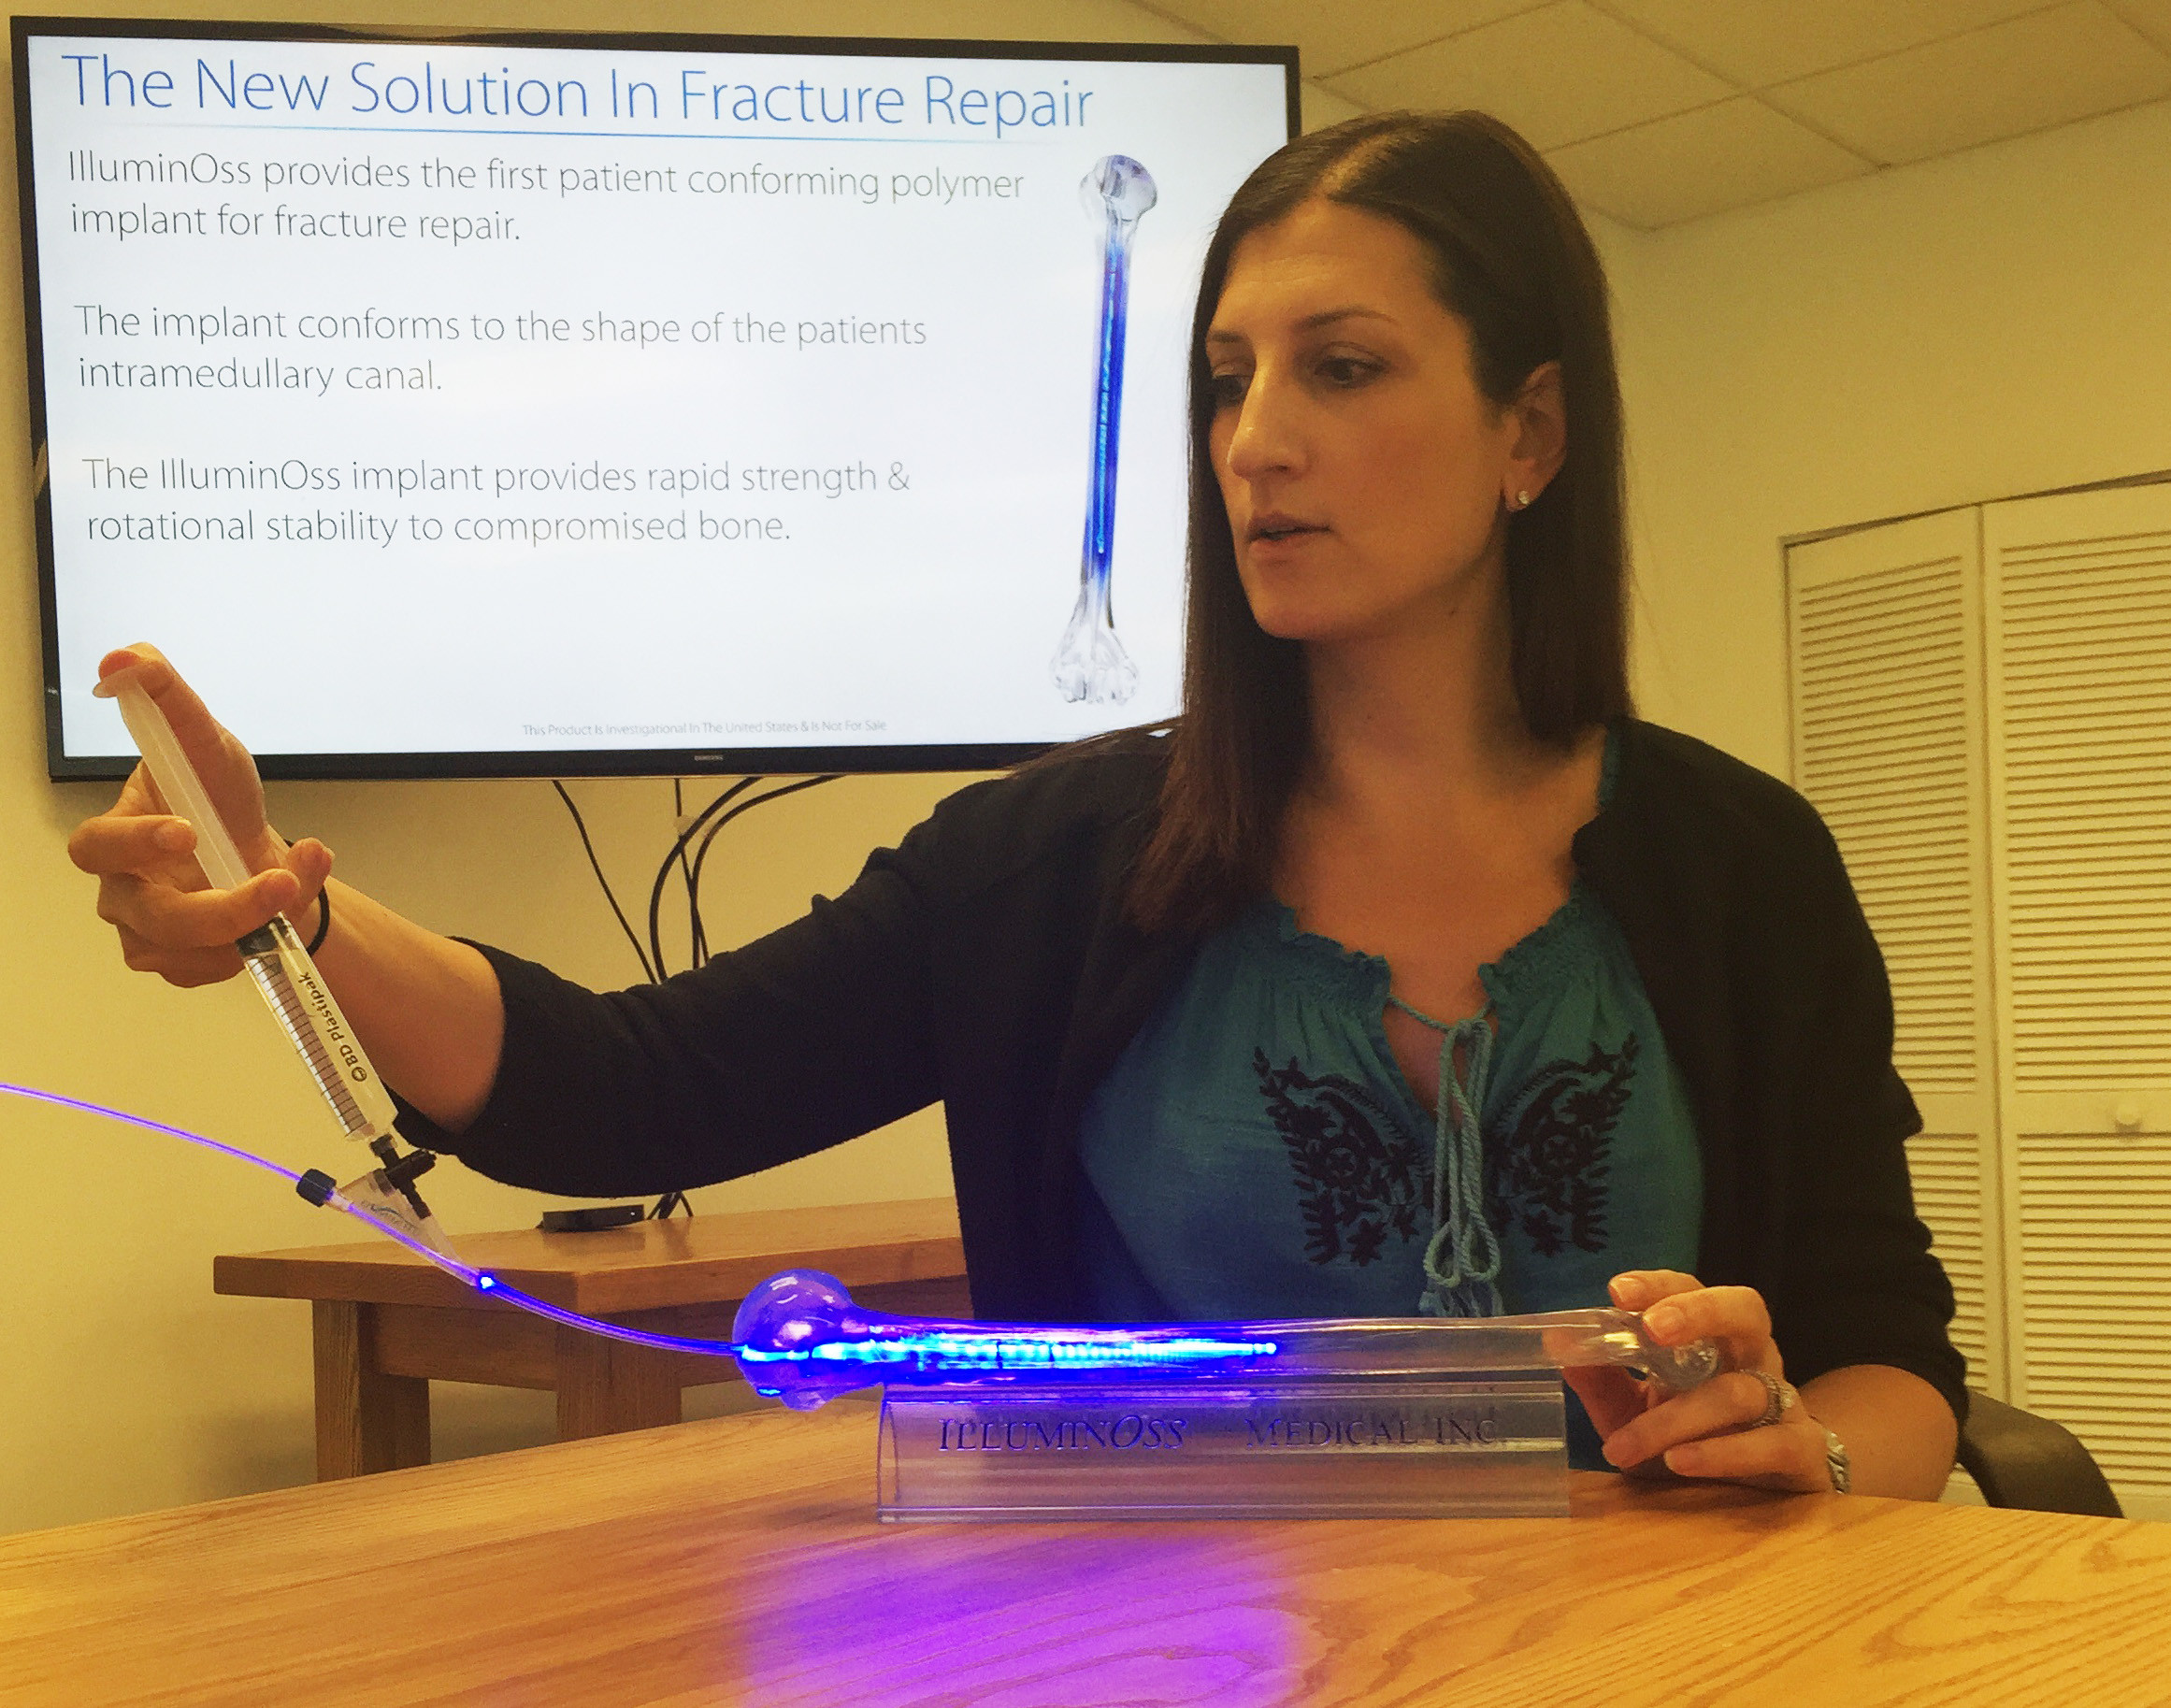 Amy Berman, vice president of clinical affairs, demonstrates IlluminOss's new technology to repair bone fracture.